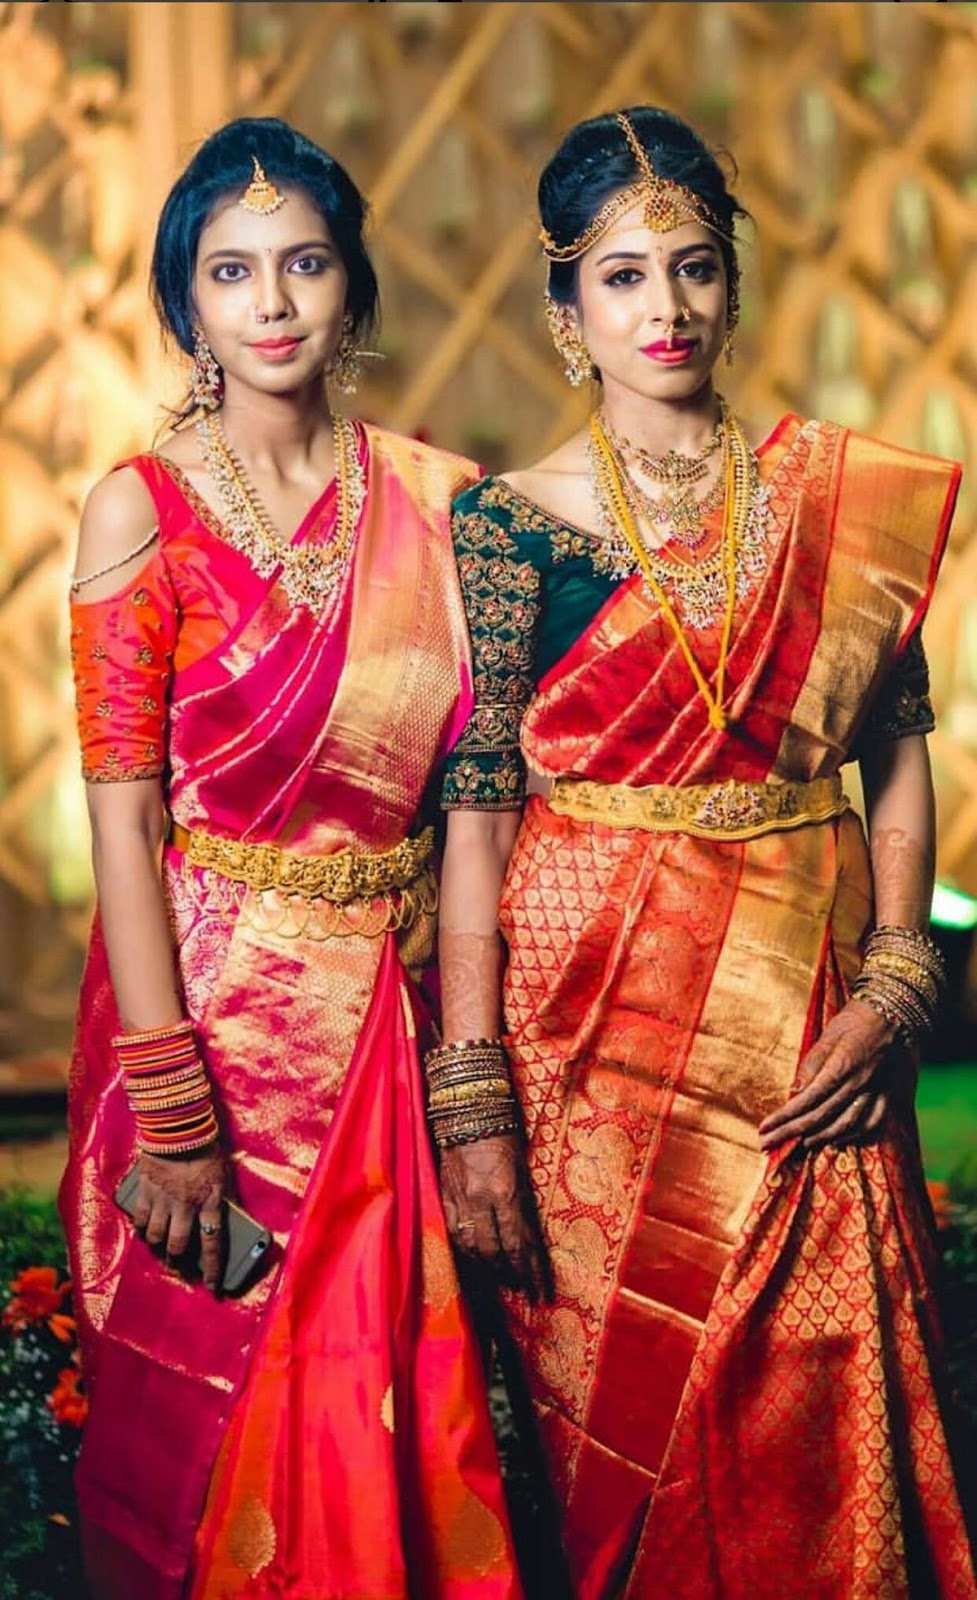 f08e6447a7f9e Reshmi saree blouse designs with a cold shoulder cut out isnt a 2019 trend.  I spotted many women pairing their silk sarees with cold shoulder blouse  designs ...